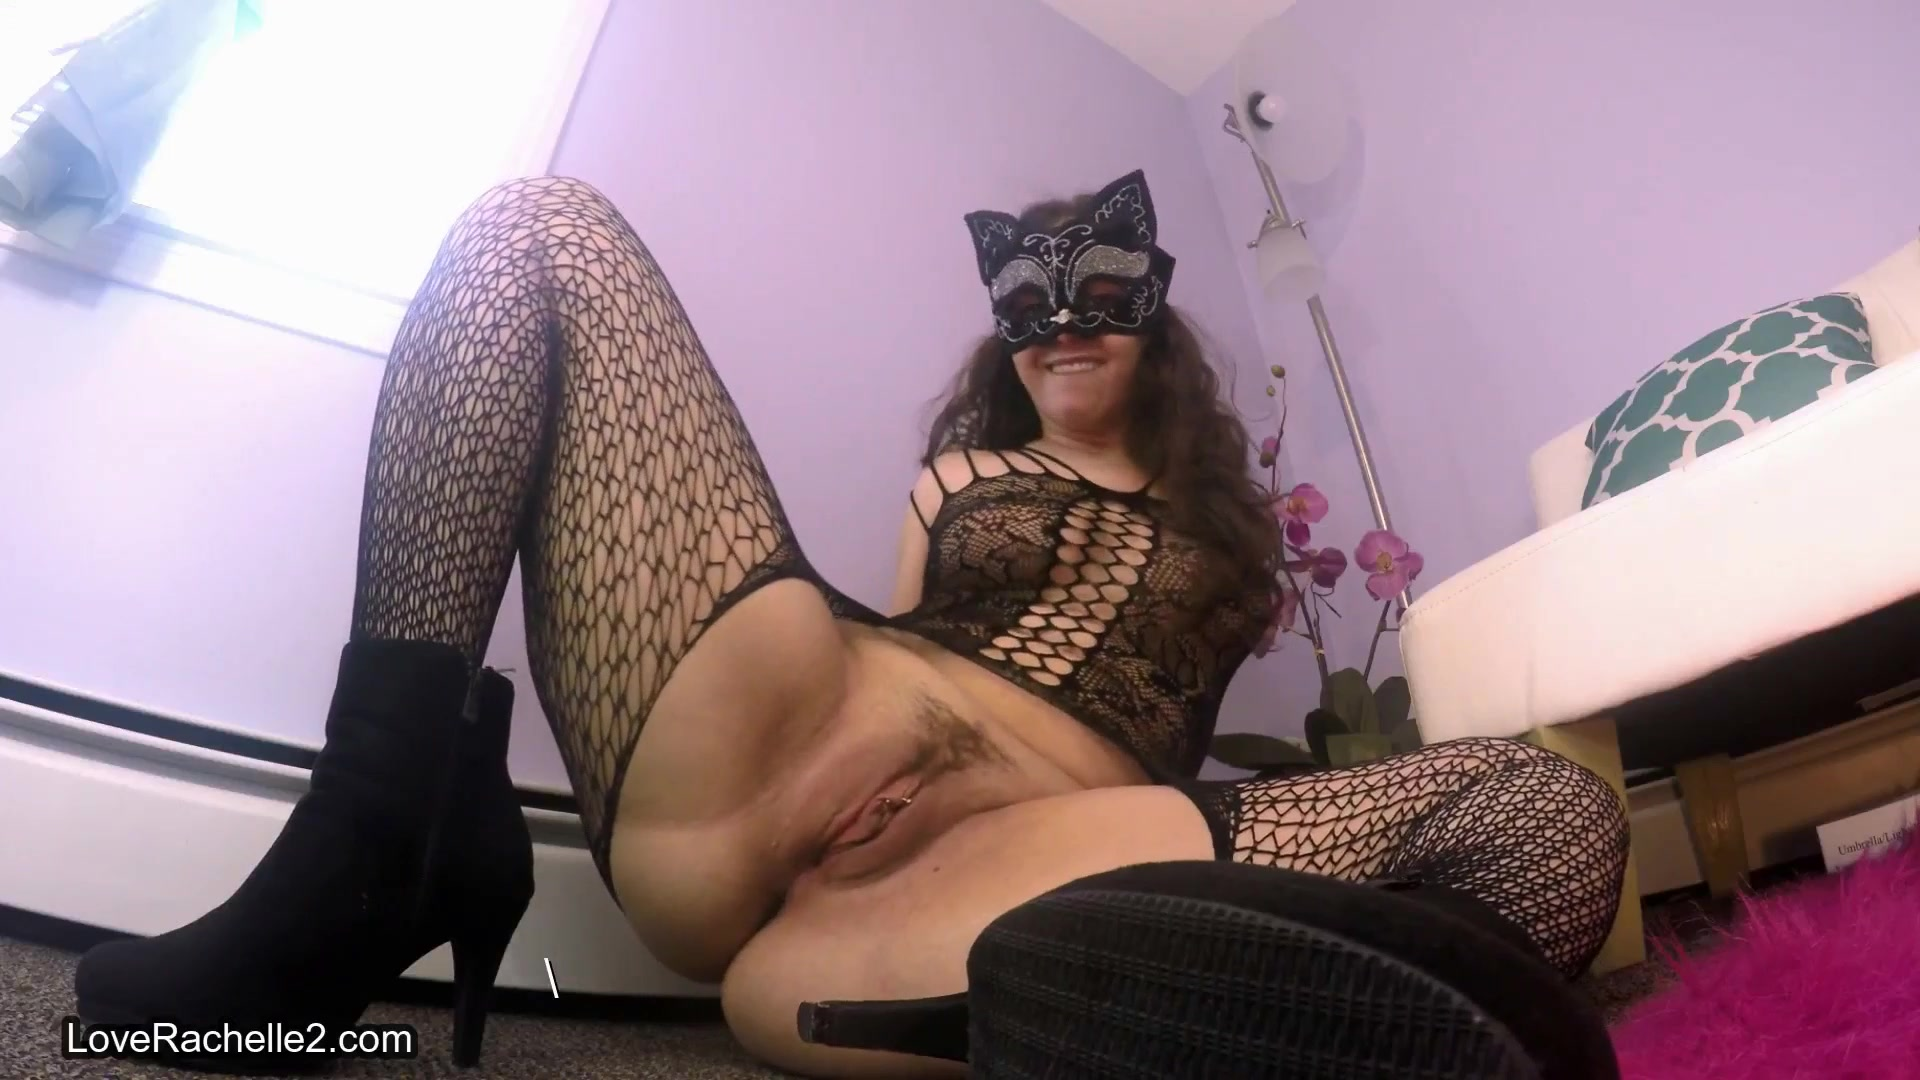 I Know What You REALLY Wan Eat Up!-scatbb.com LoveRachelle2 00001